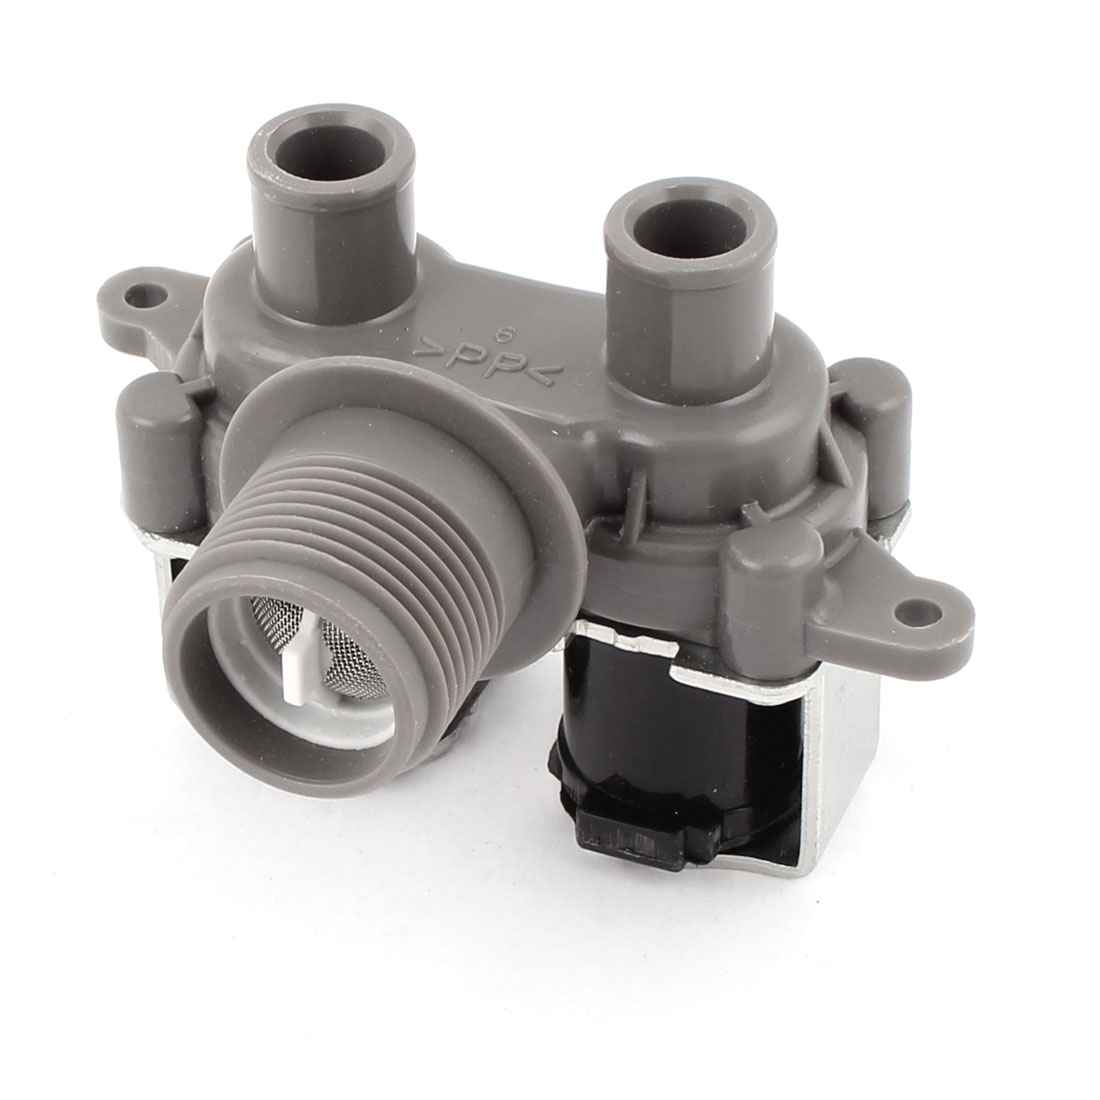 AC 220V 2 Ports Water Inlet Valve FCS180A for Panasonic Washing Machine